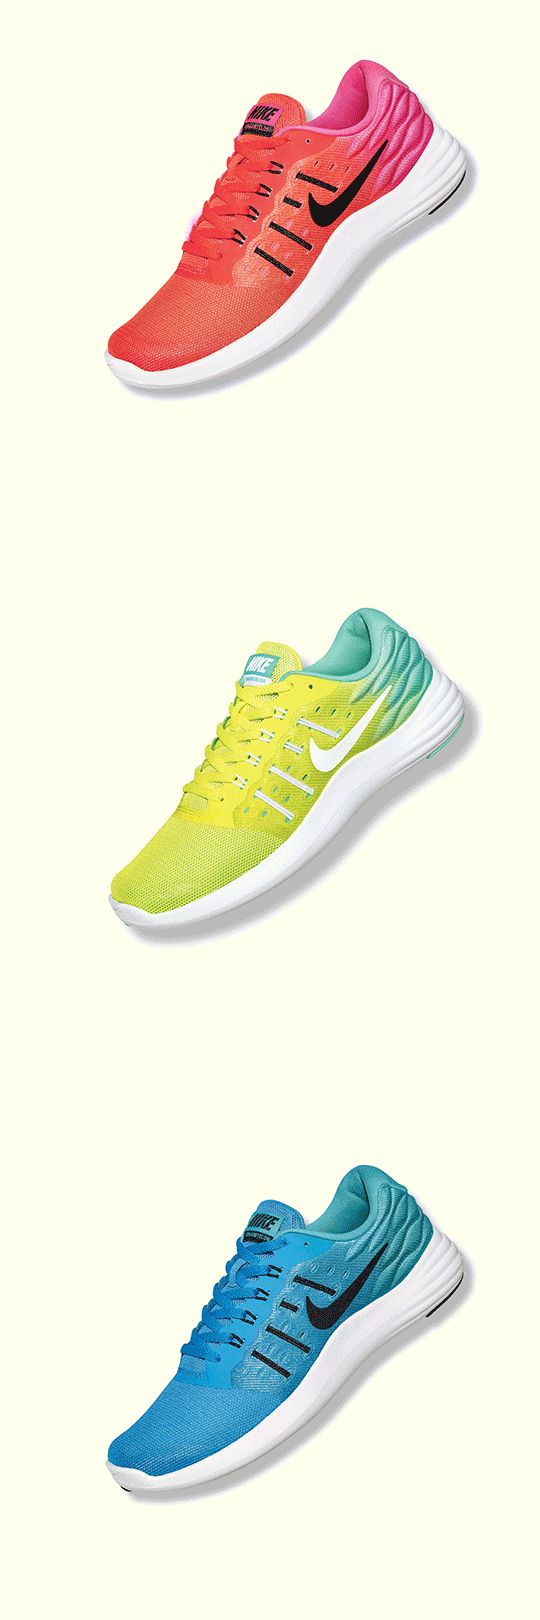 Tantos inundar Lijadoras  Nike Store Outlet Offer Various Series Of Nike Shoes, Free Run, Roshe Run,  Air Jordan etc. For Running, Basketball… | Sneakers street style, Nike  shoes roshe, Shoes